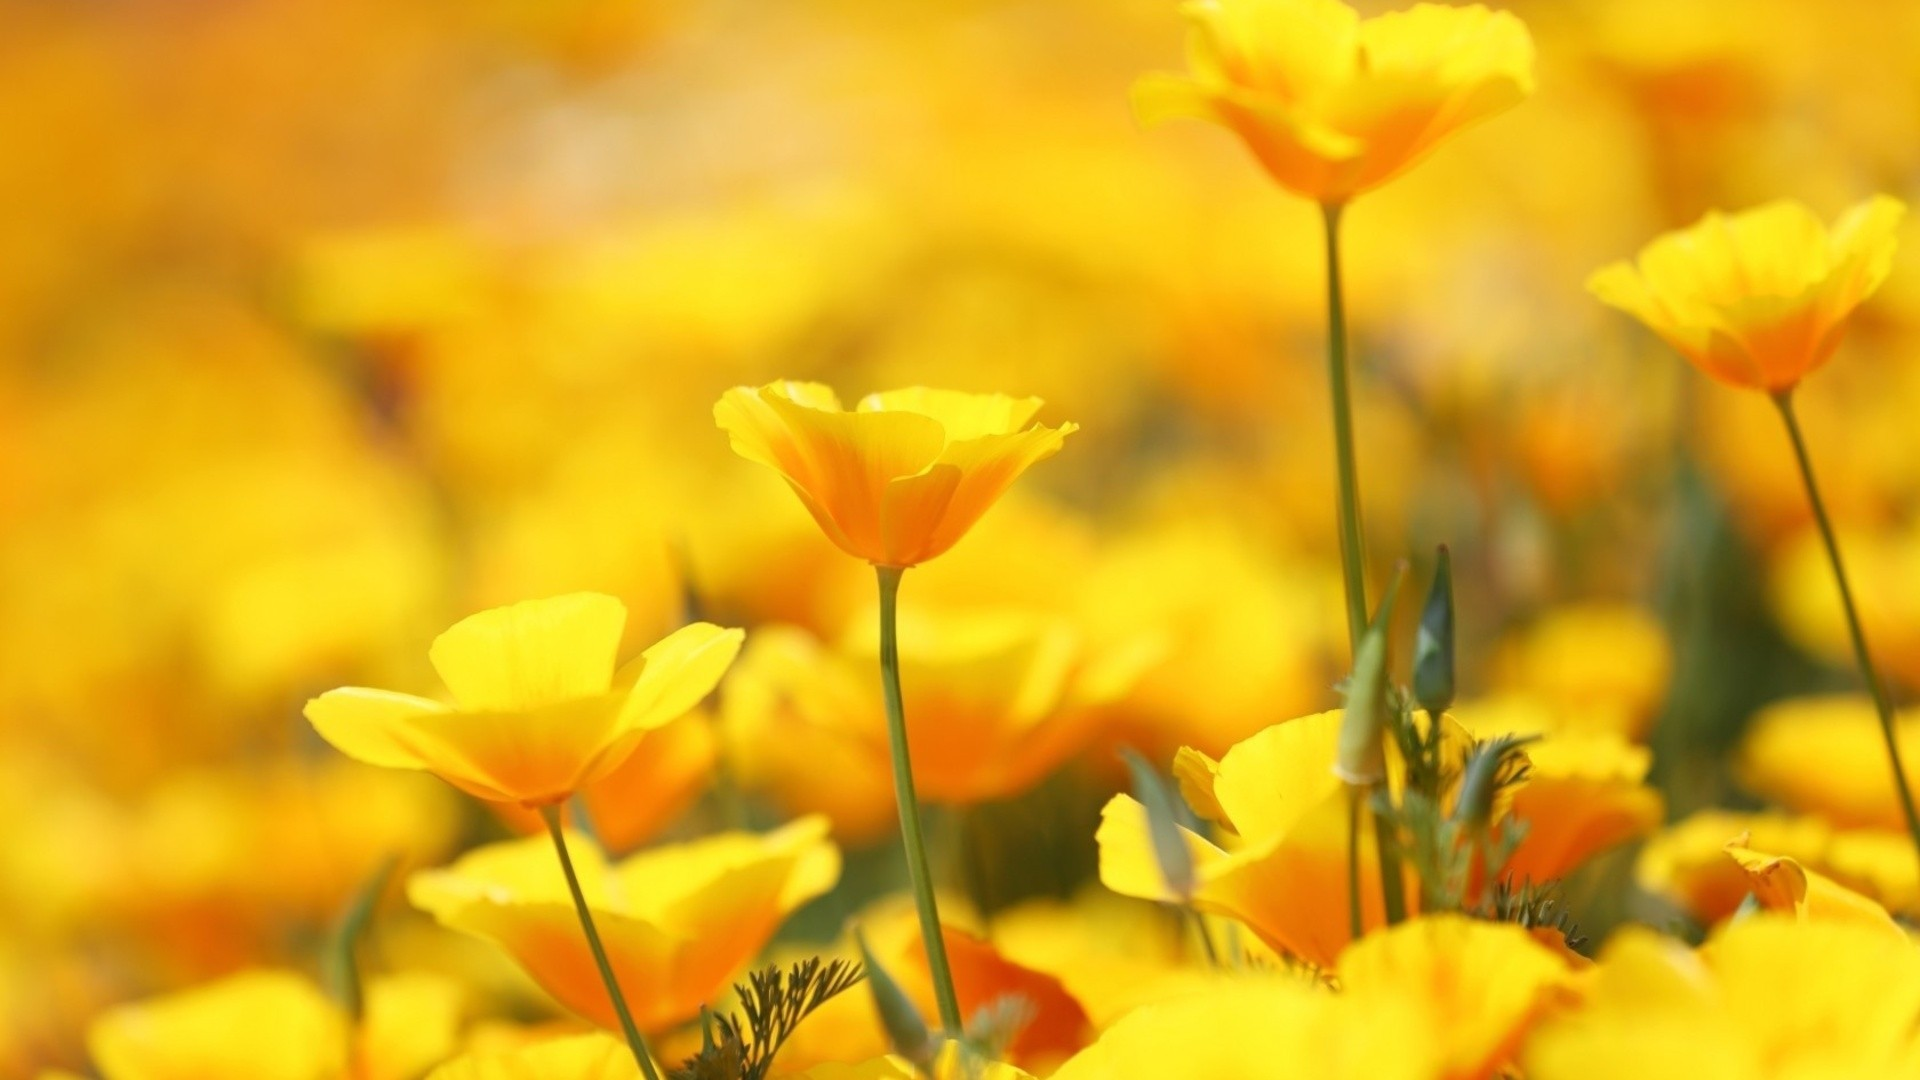 Yellow Flower Wallpaper Picture hd